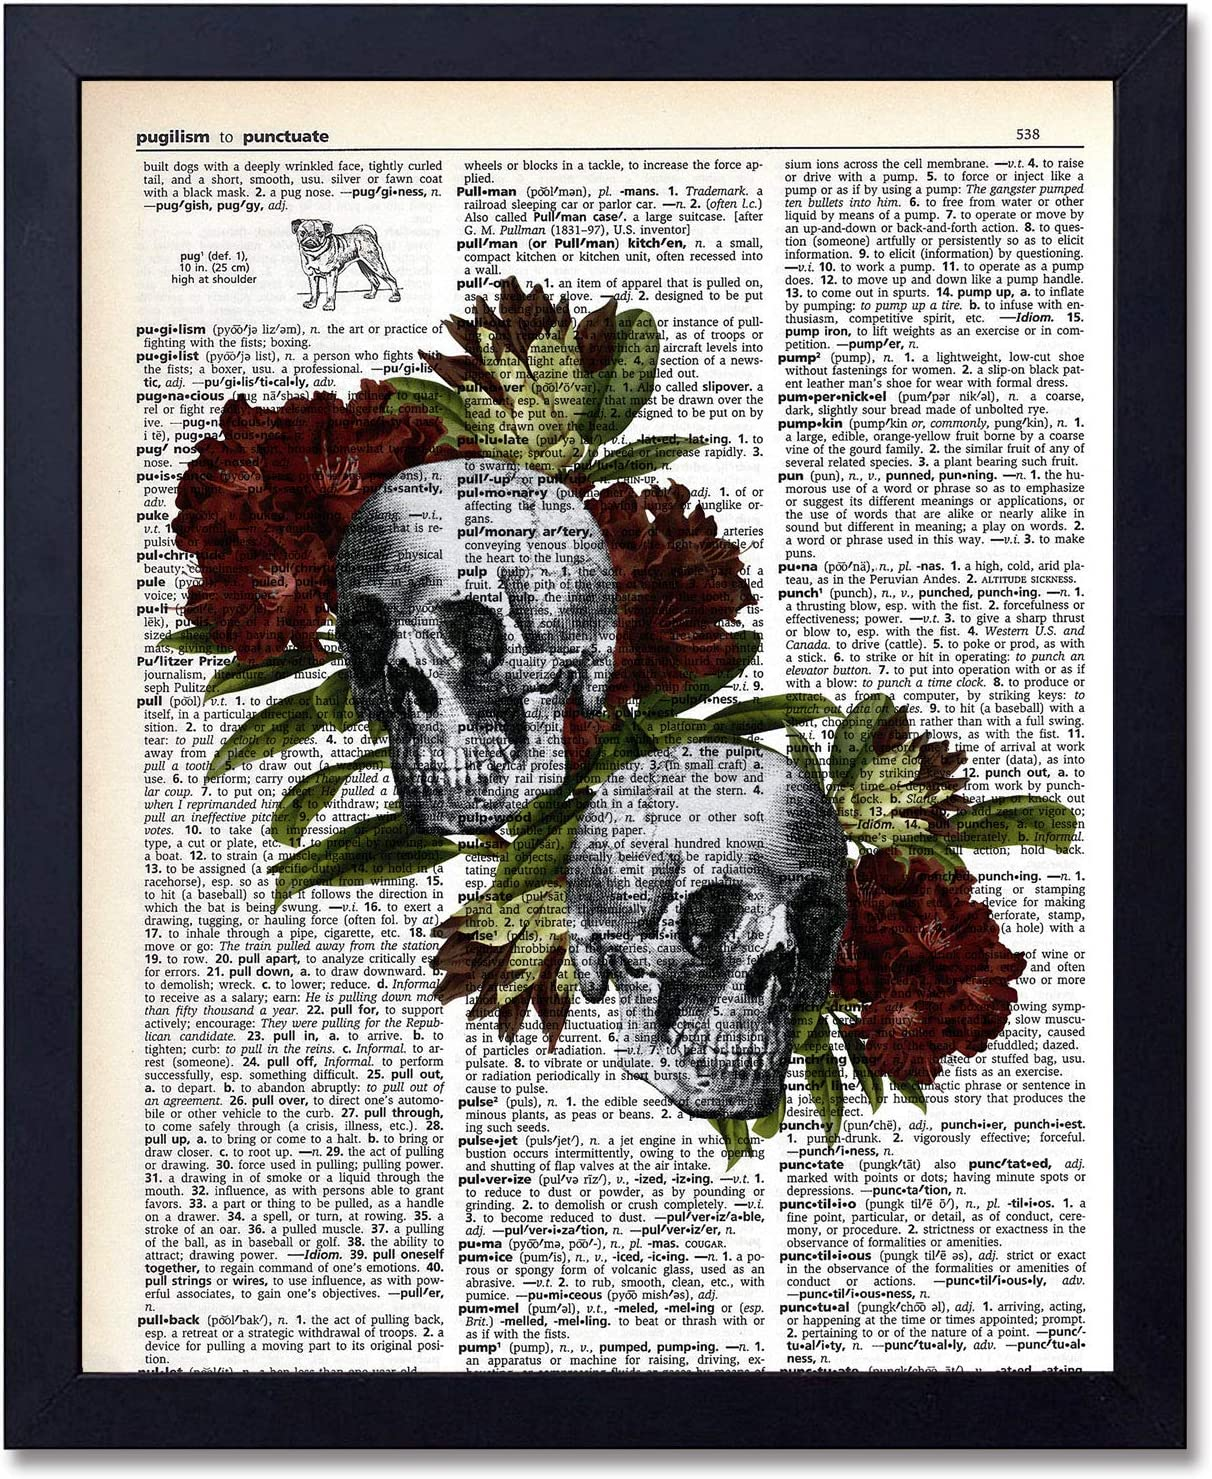 Organs & Flower Anatomy Skull Art Prints - Dictionary Steampunk Medical Wall Art Goth Room Decor Gift for Office, Doctor's Office, Gift, Physician, Nurse, Unframed 8x10 inches